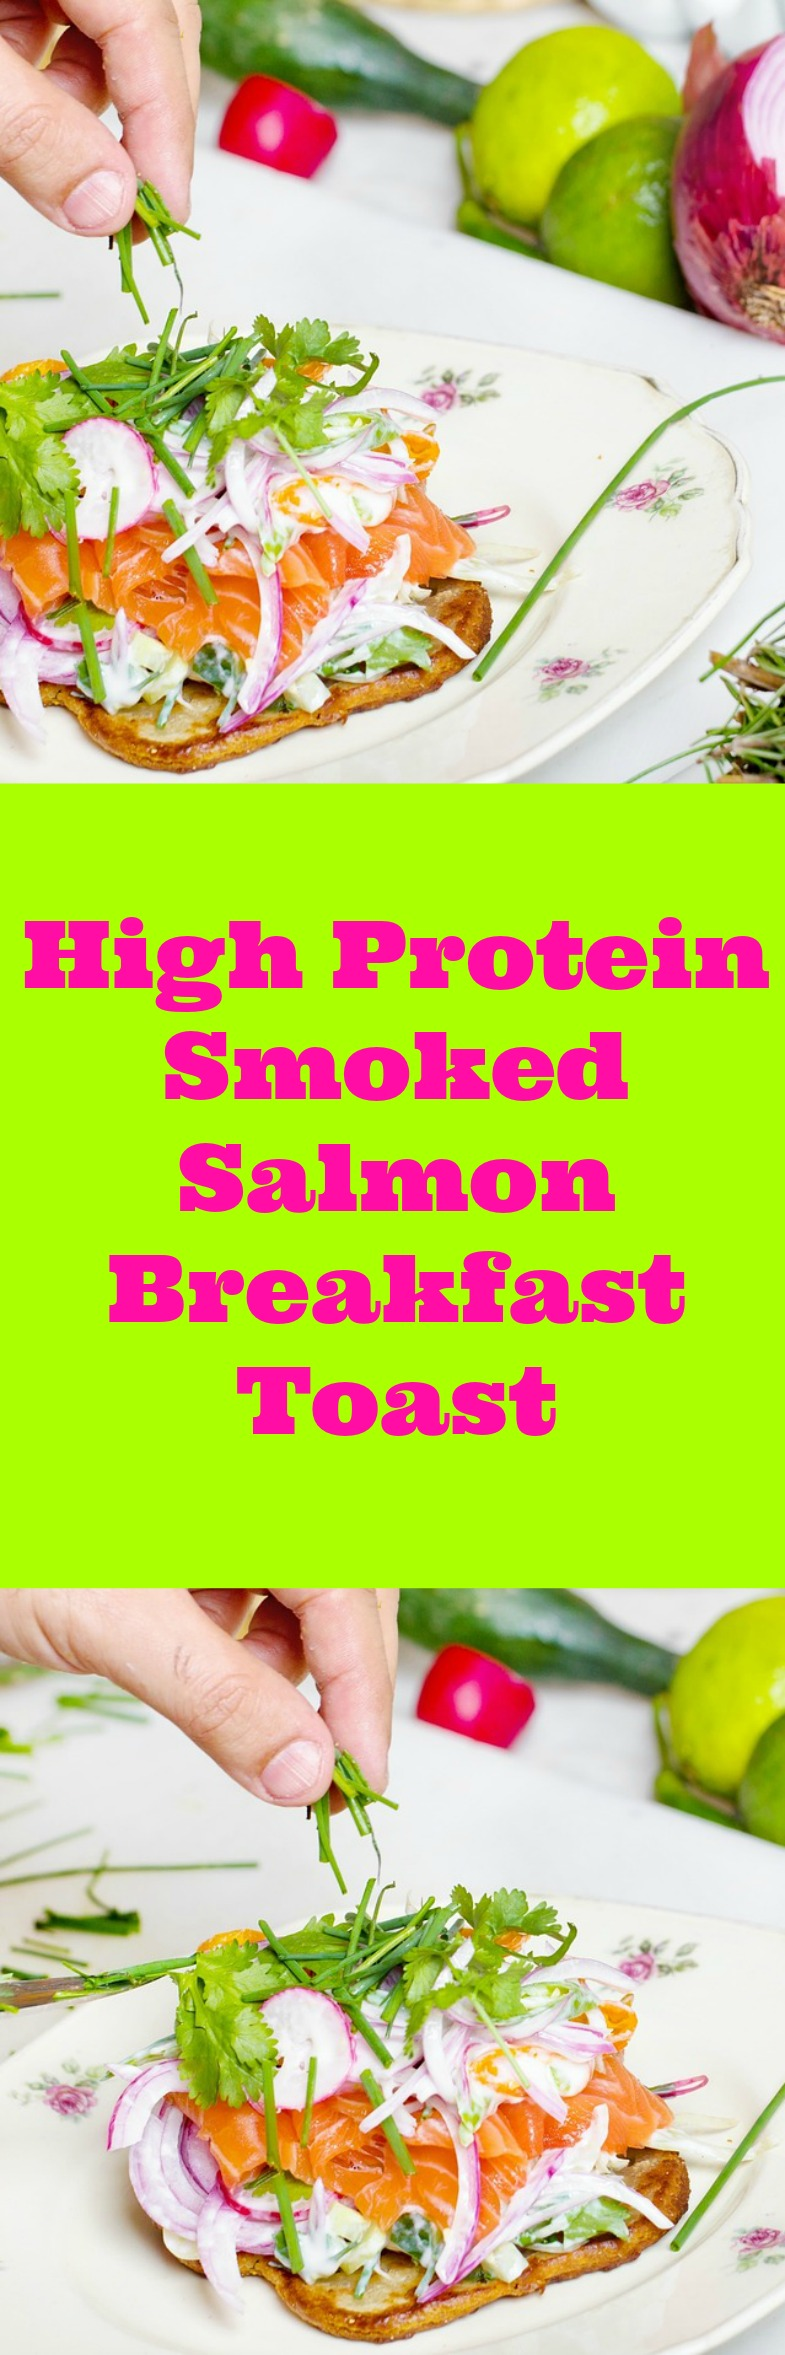 High protein Smoked Salmon Breakfast toast for weight loss. Boost your energy, curb your appetite with this low calorie recipe.